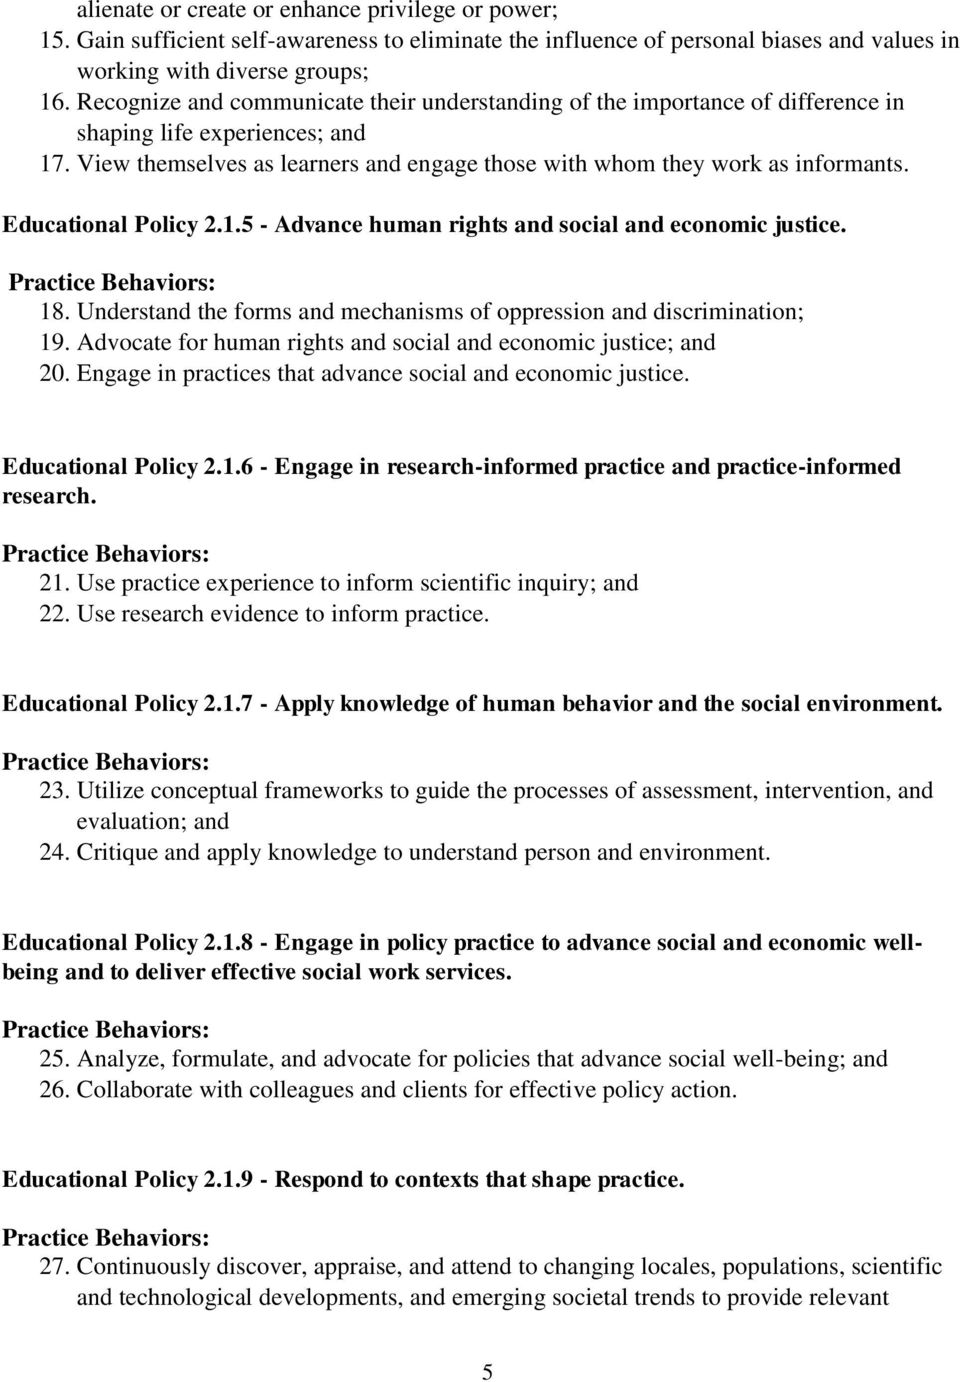 Educational Policy 2.1.5 - Advance human rights and social and economic justice. Practice Behaviors: 18. Understand the forms and mechanisms of oppression and discrimination; 19.